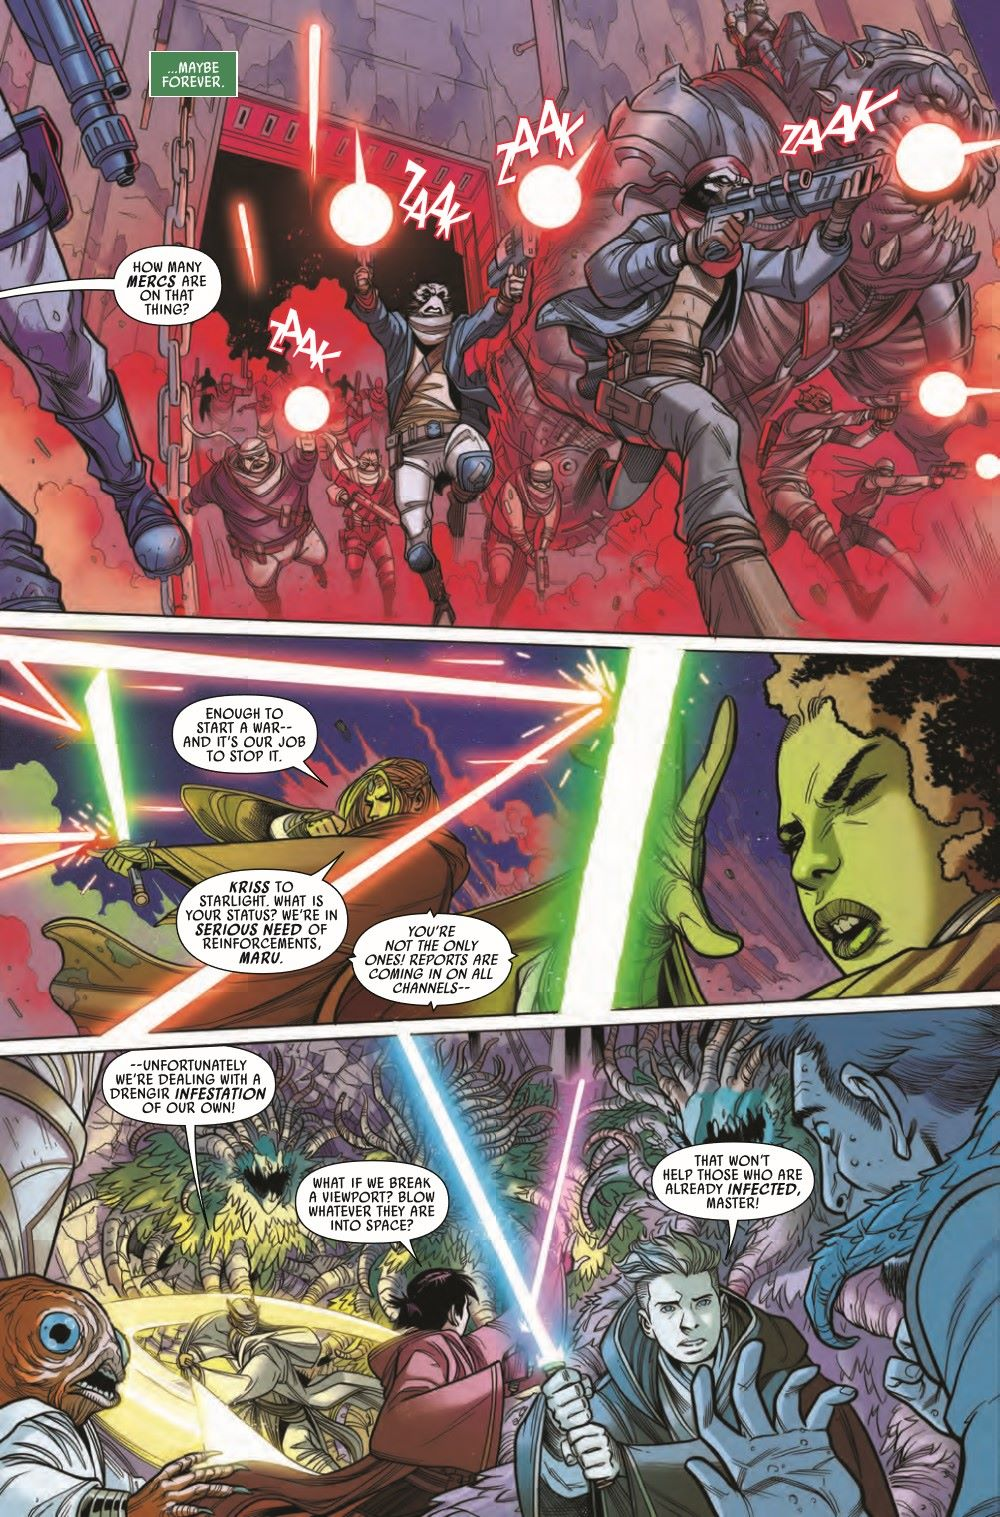 STWHIGHREP2021005_Preview-6 ComicList Previews: STAR WARS THE HIGH REPUBLIC #5